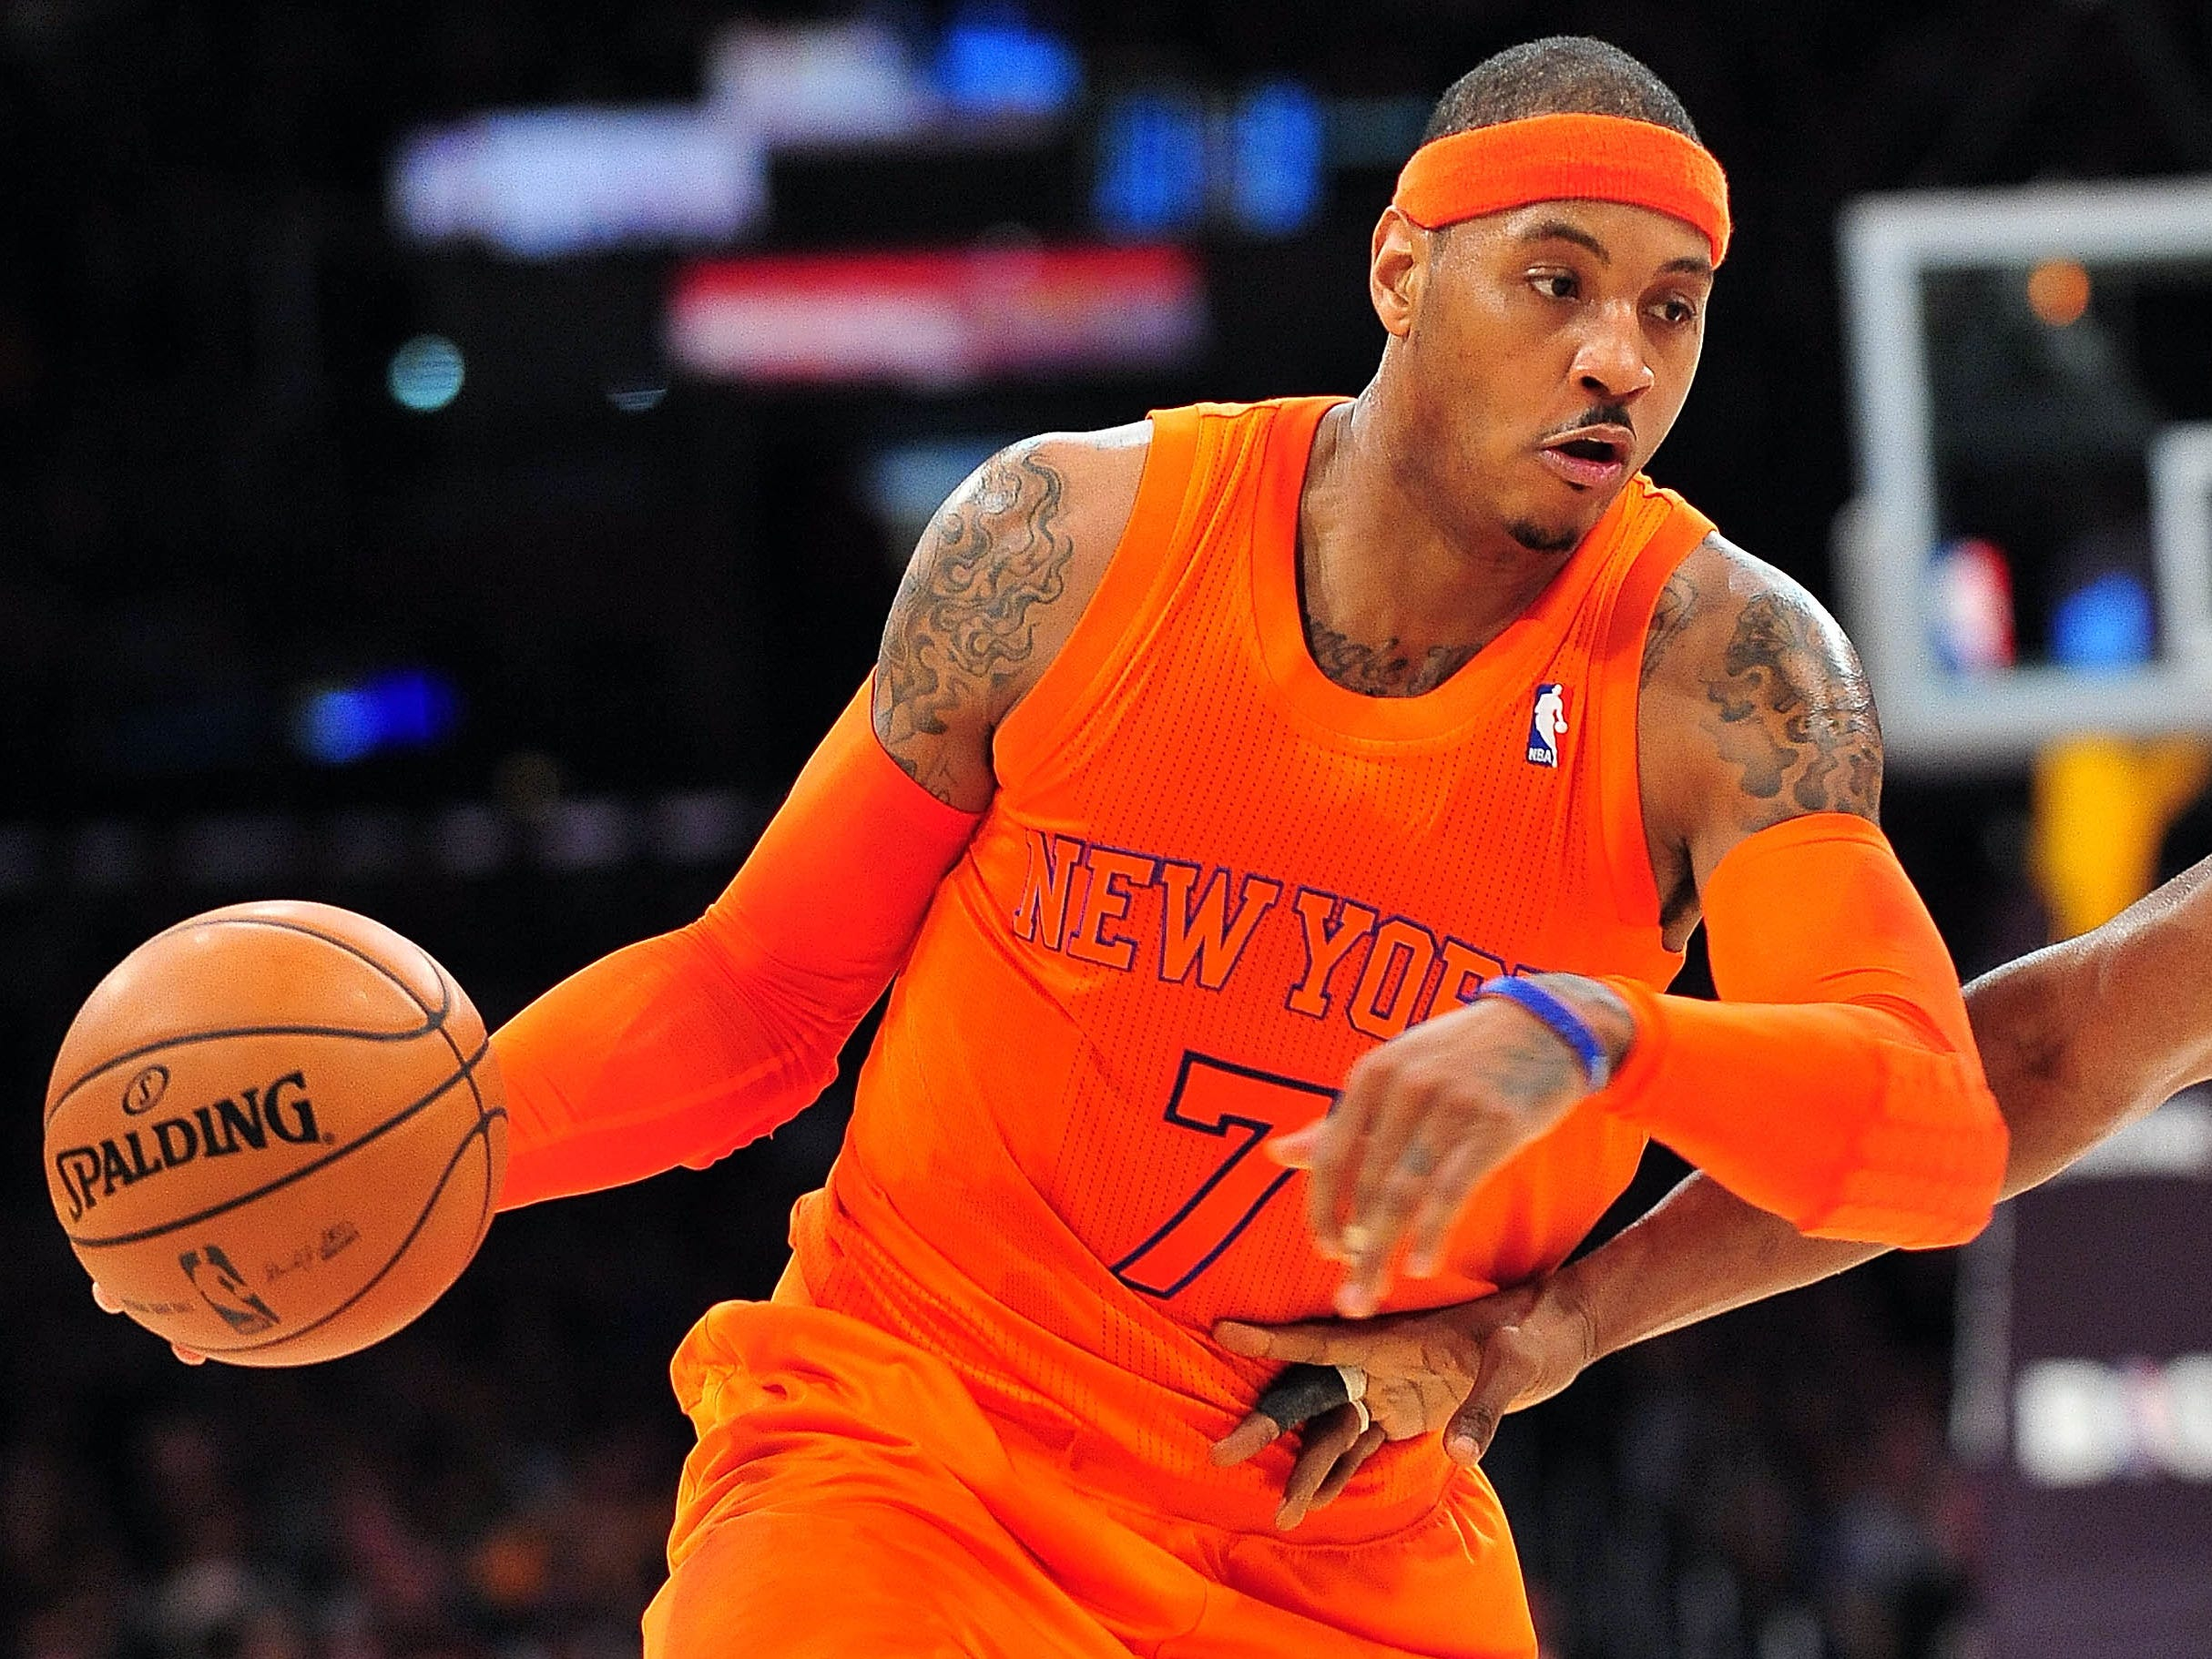 New York Knicks forward Carmelo Anthony wore more orange in 2012 than when he was at Syracuse.